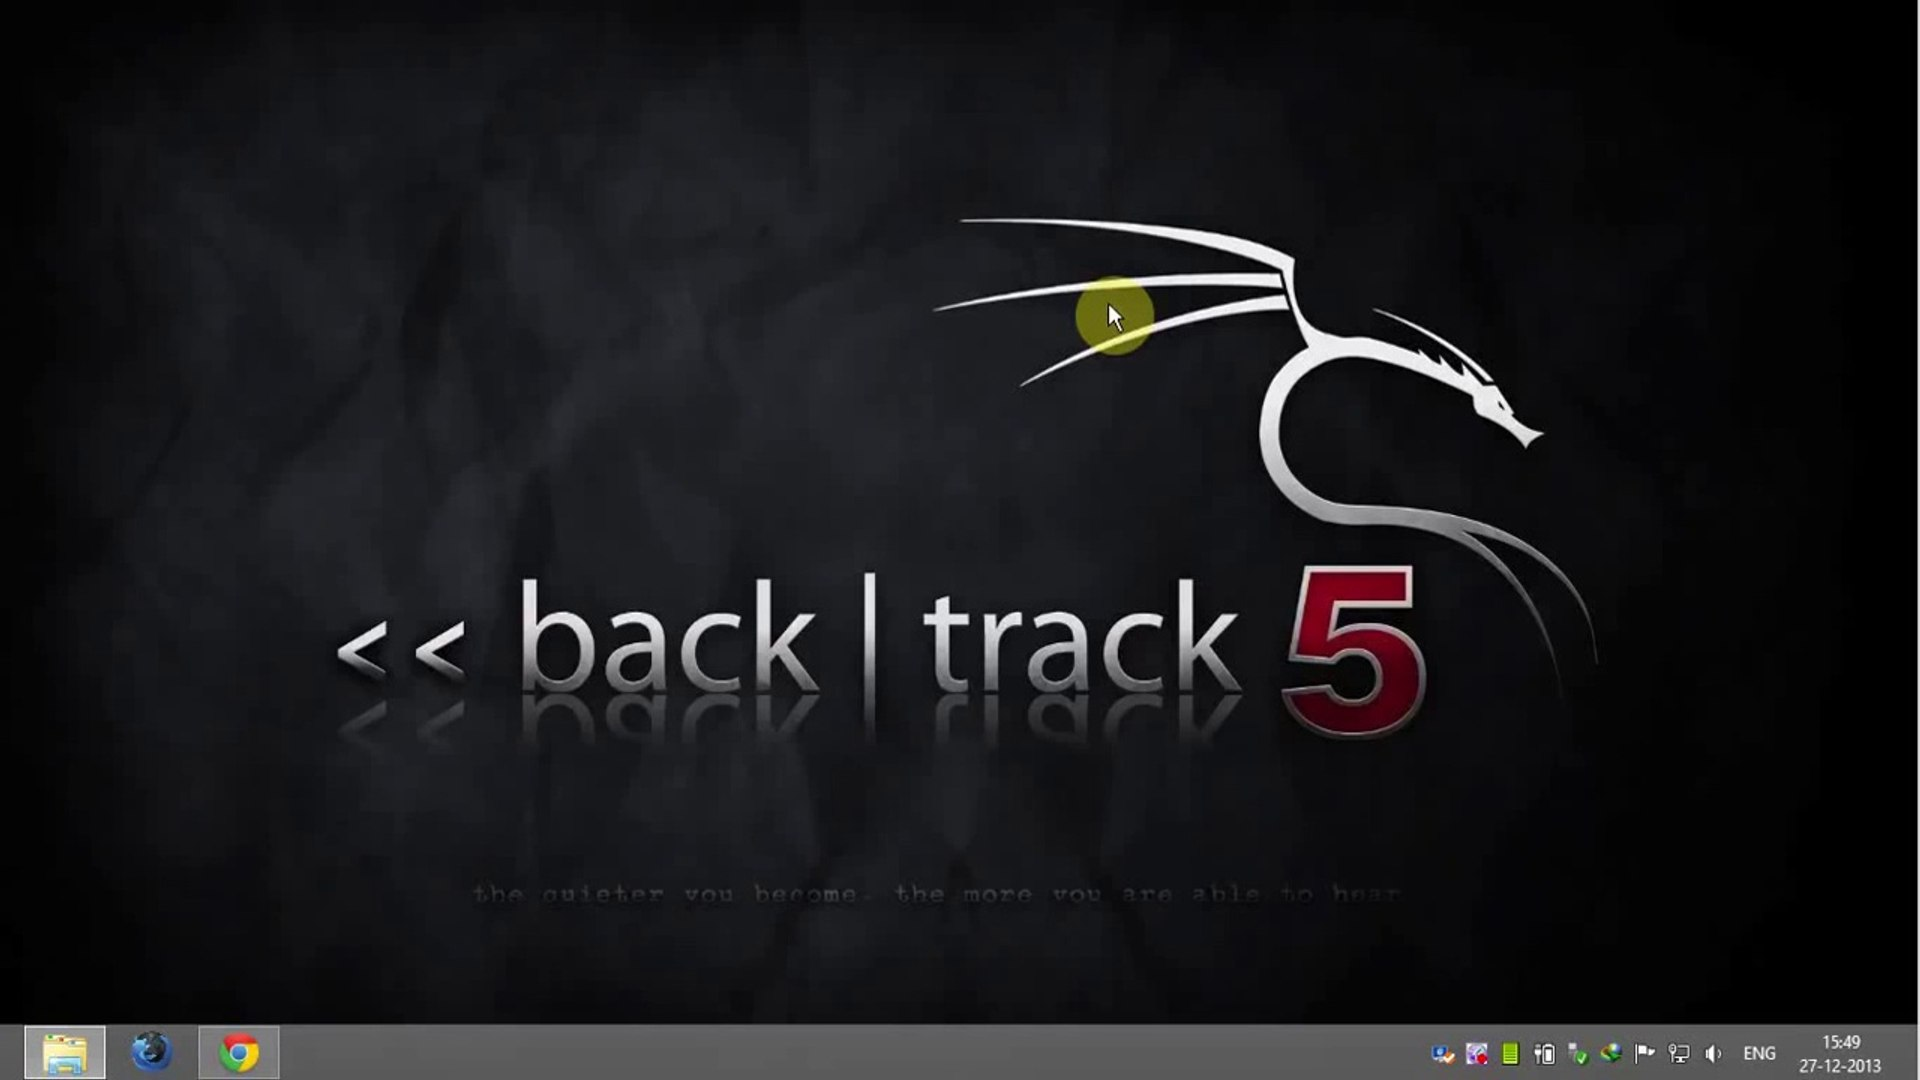 How To Install Backtrack 5 R3 On Windows 7 8 Using Vmware Workstation Hd Narration Video Dailymotion